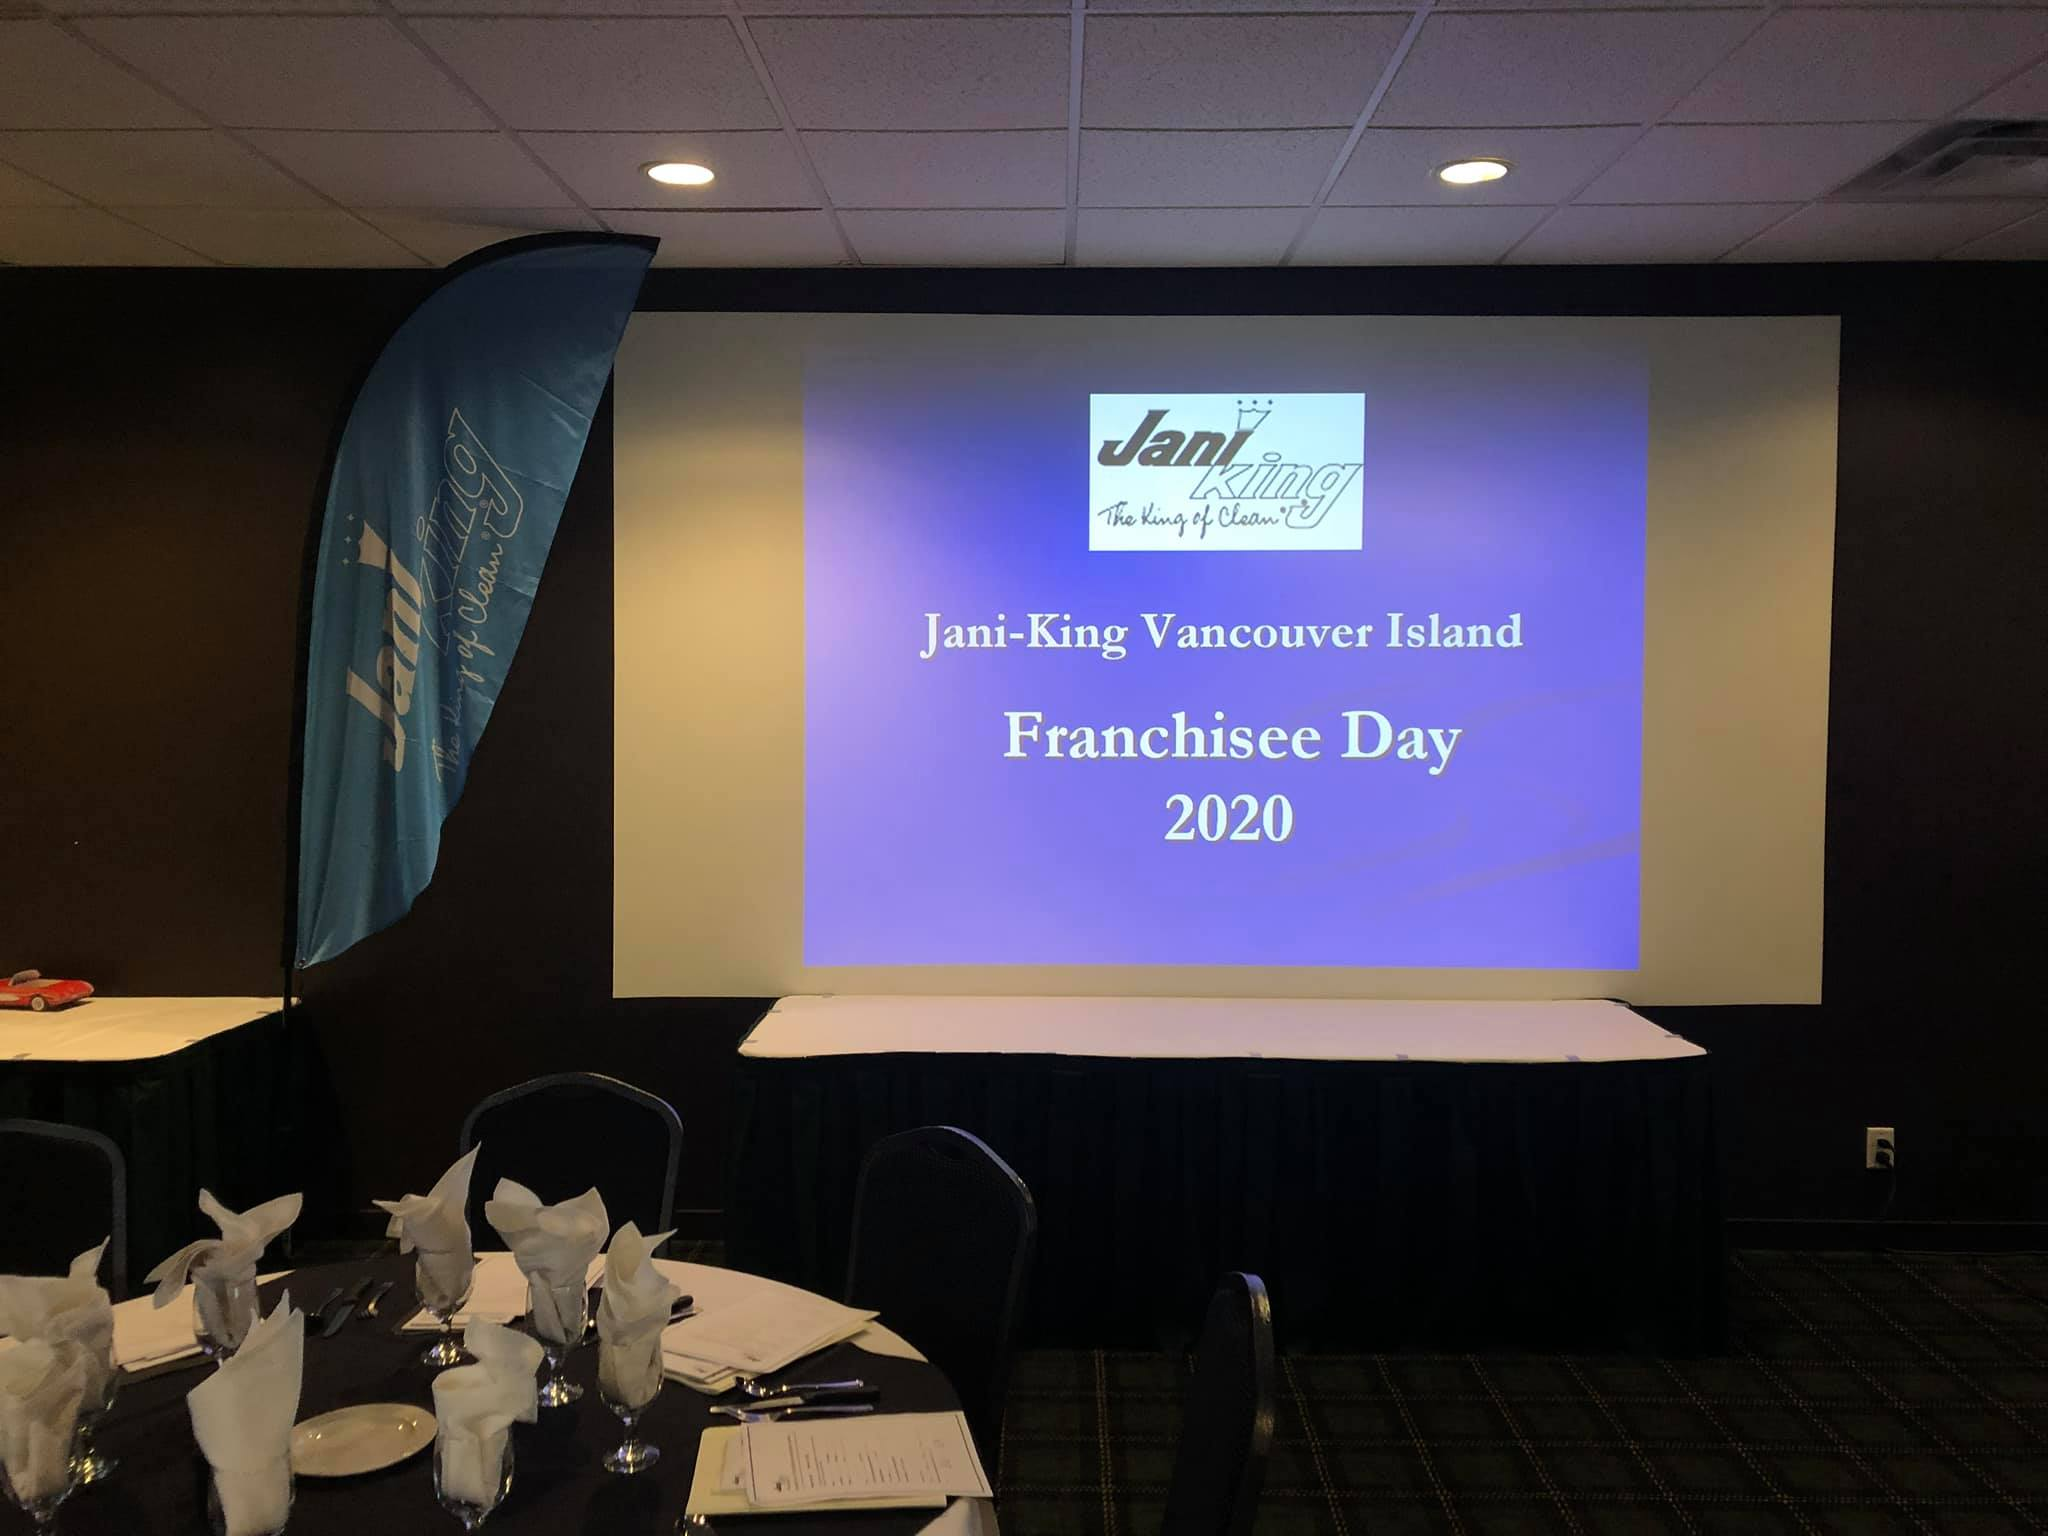 Jani-King Vancouver Island Franchisee Day